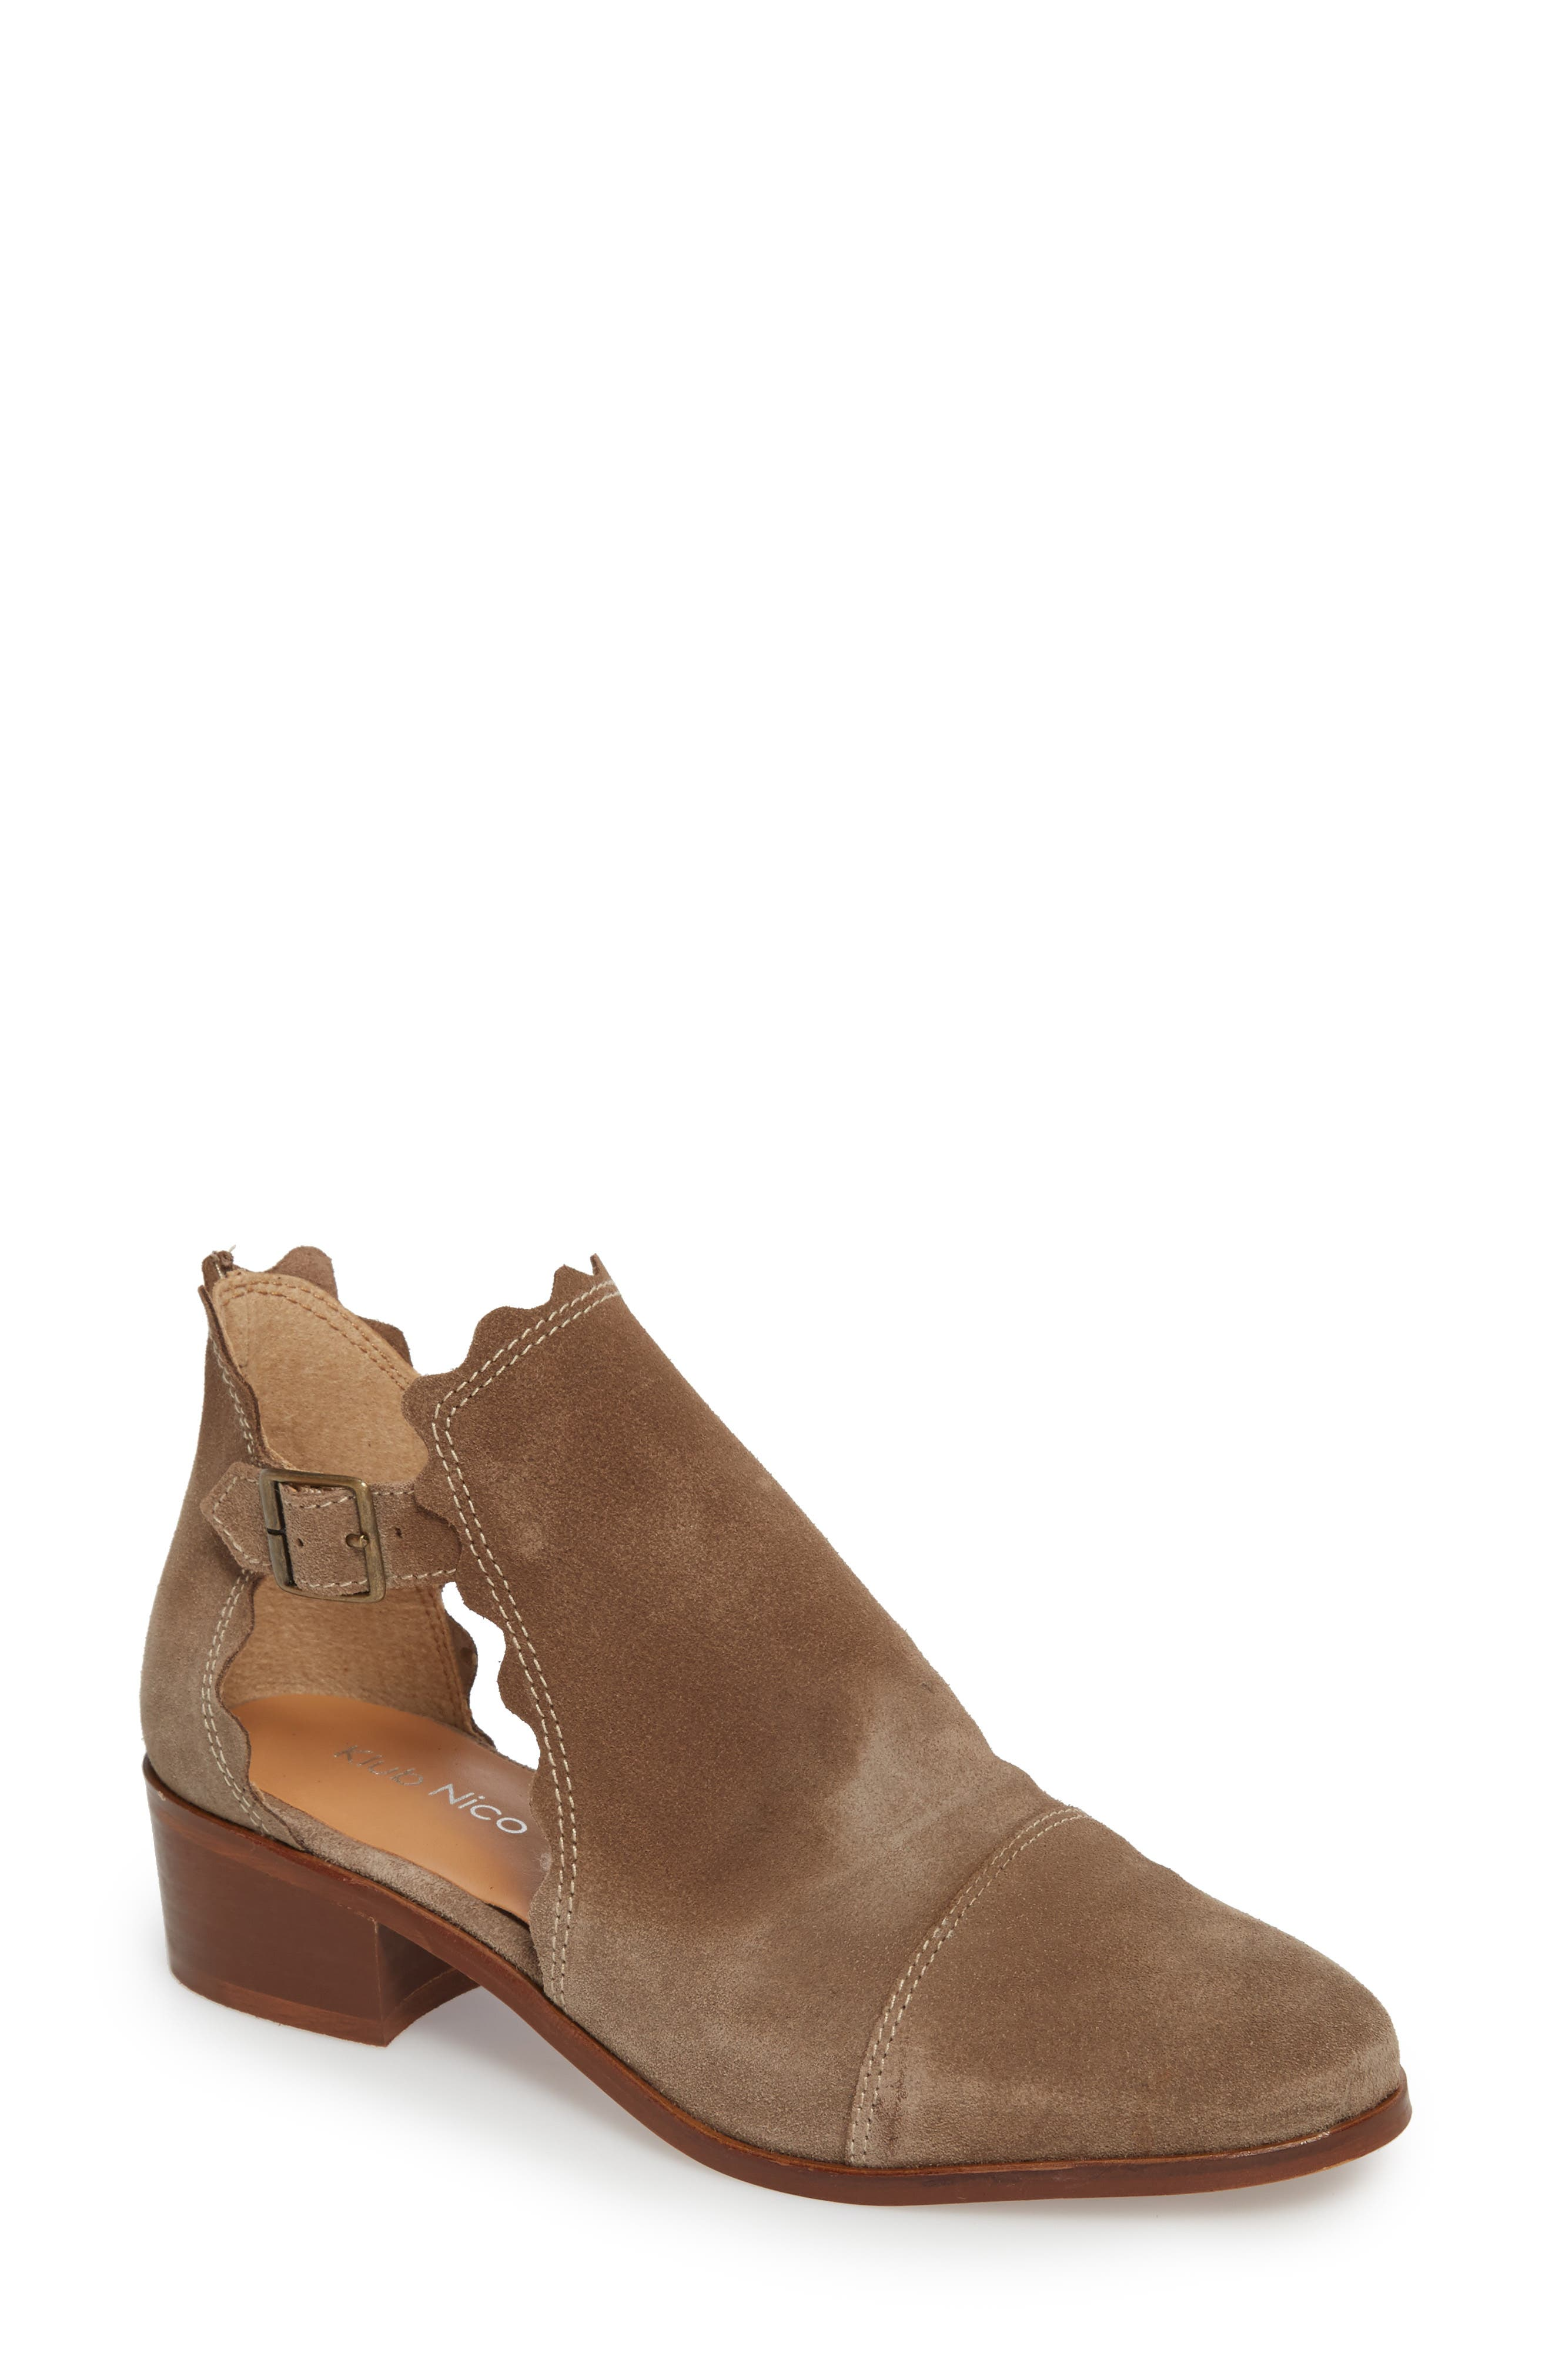 Beau Open Side Bootie,                             Main thumbnail 1, color,                             Taupe Suede